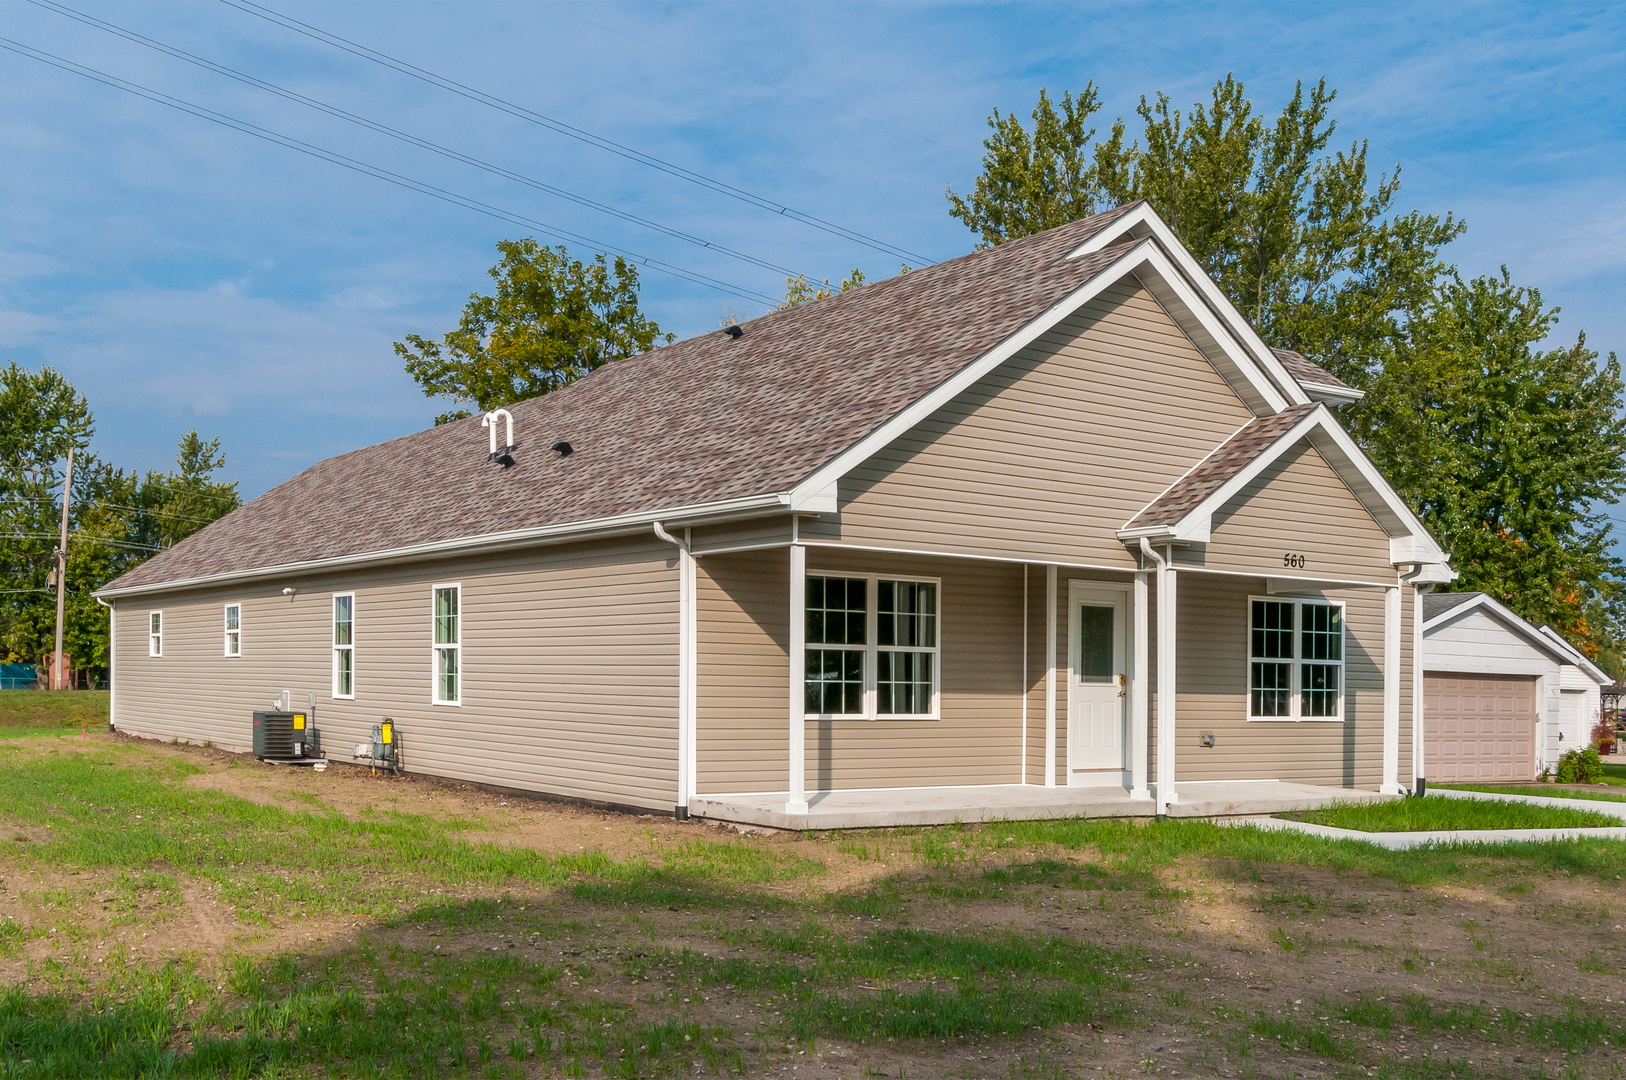 Property for sale at 520 South Virginia Street, Coal City,  IL 60416